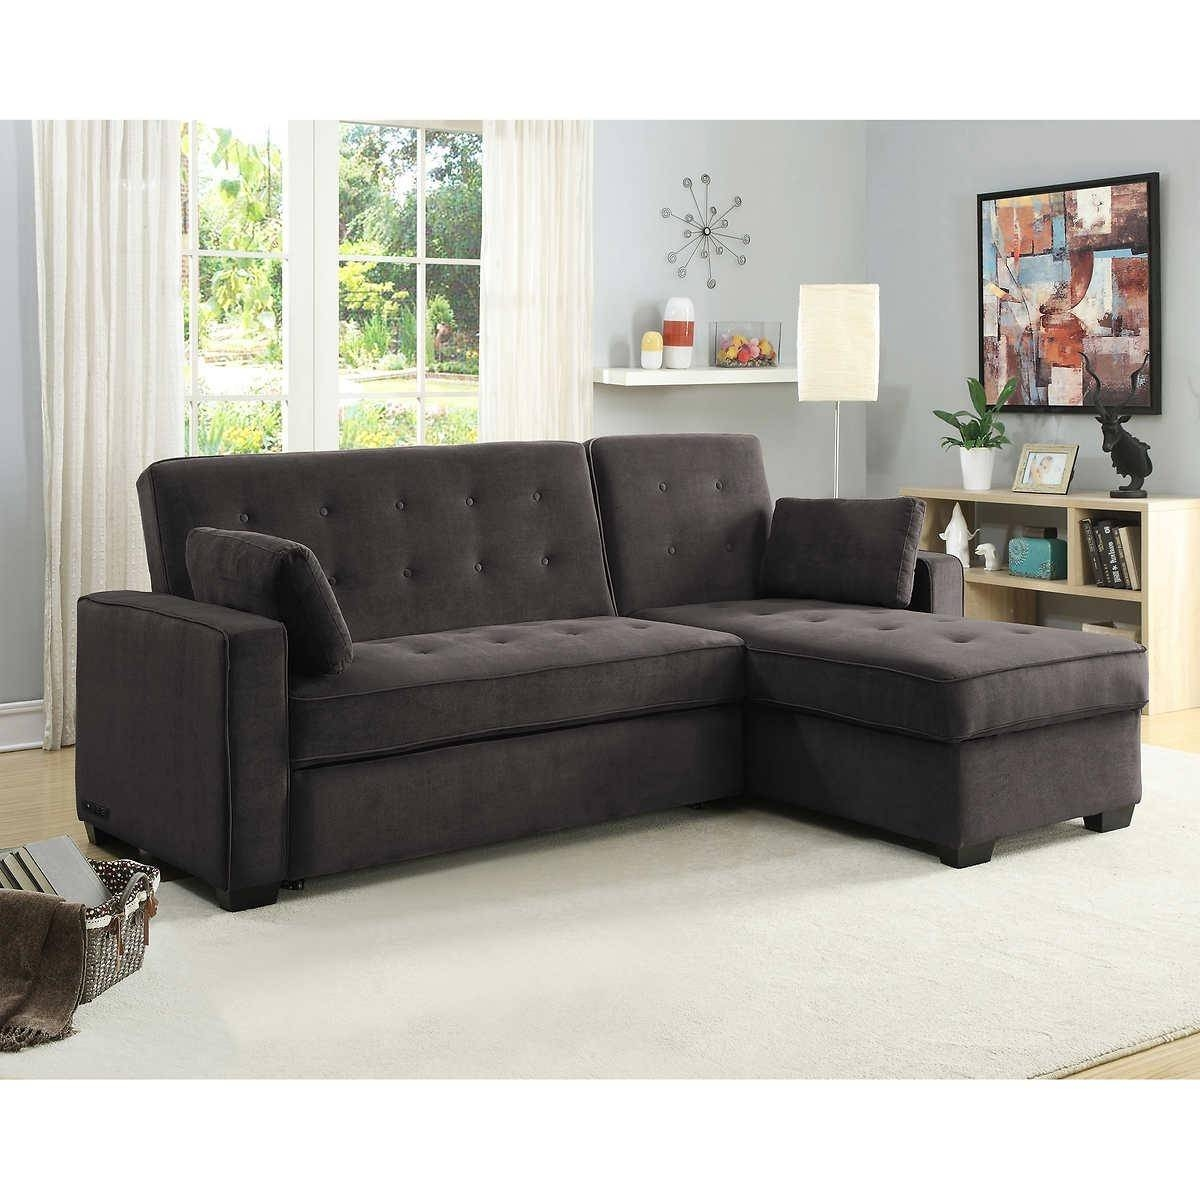 2017 Latest Berkline Recliner Sofas | Sofa Ideas inside Berkline Recliner Sofas (Image 2 of 15)